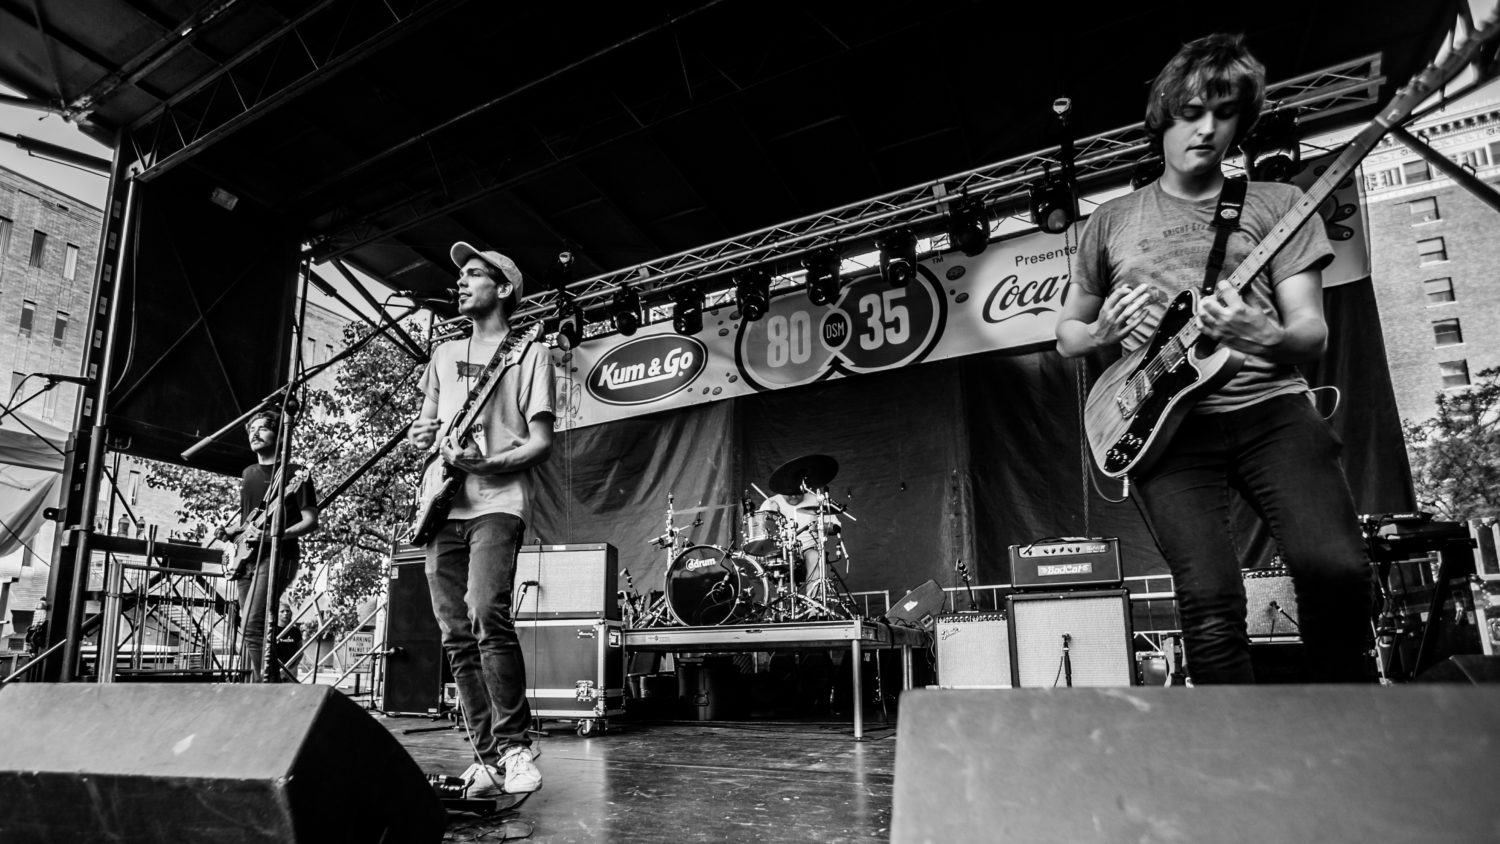 Remo Drive performing at 80/35 Music Festival 2018 in Des Moines, Iowa